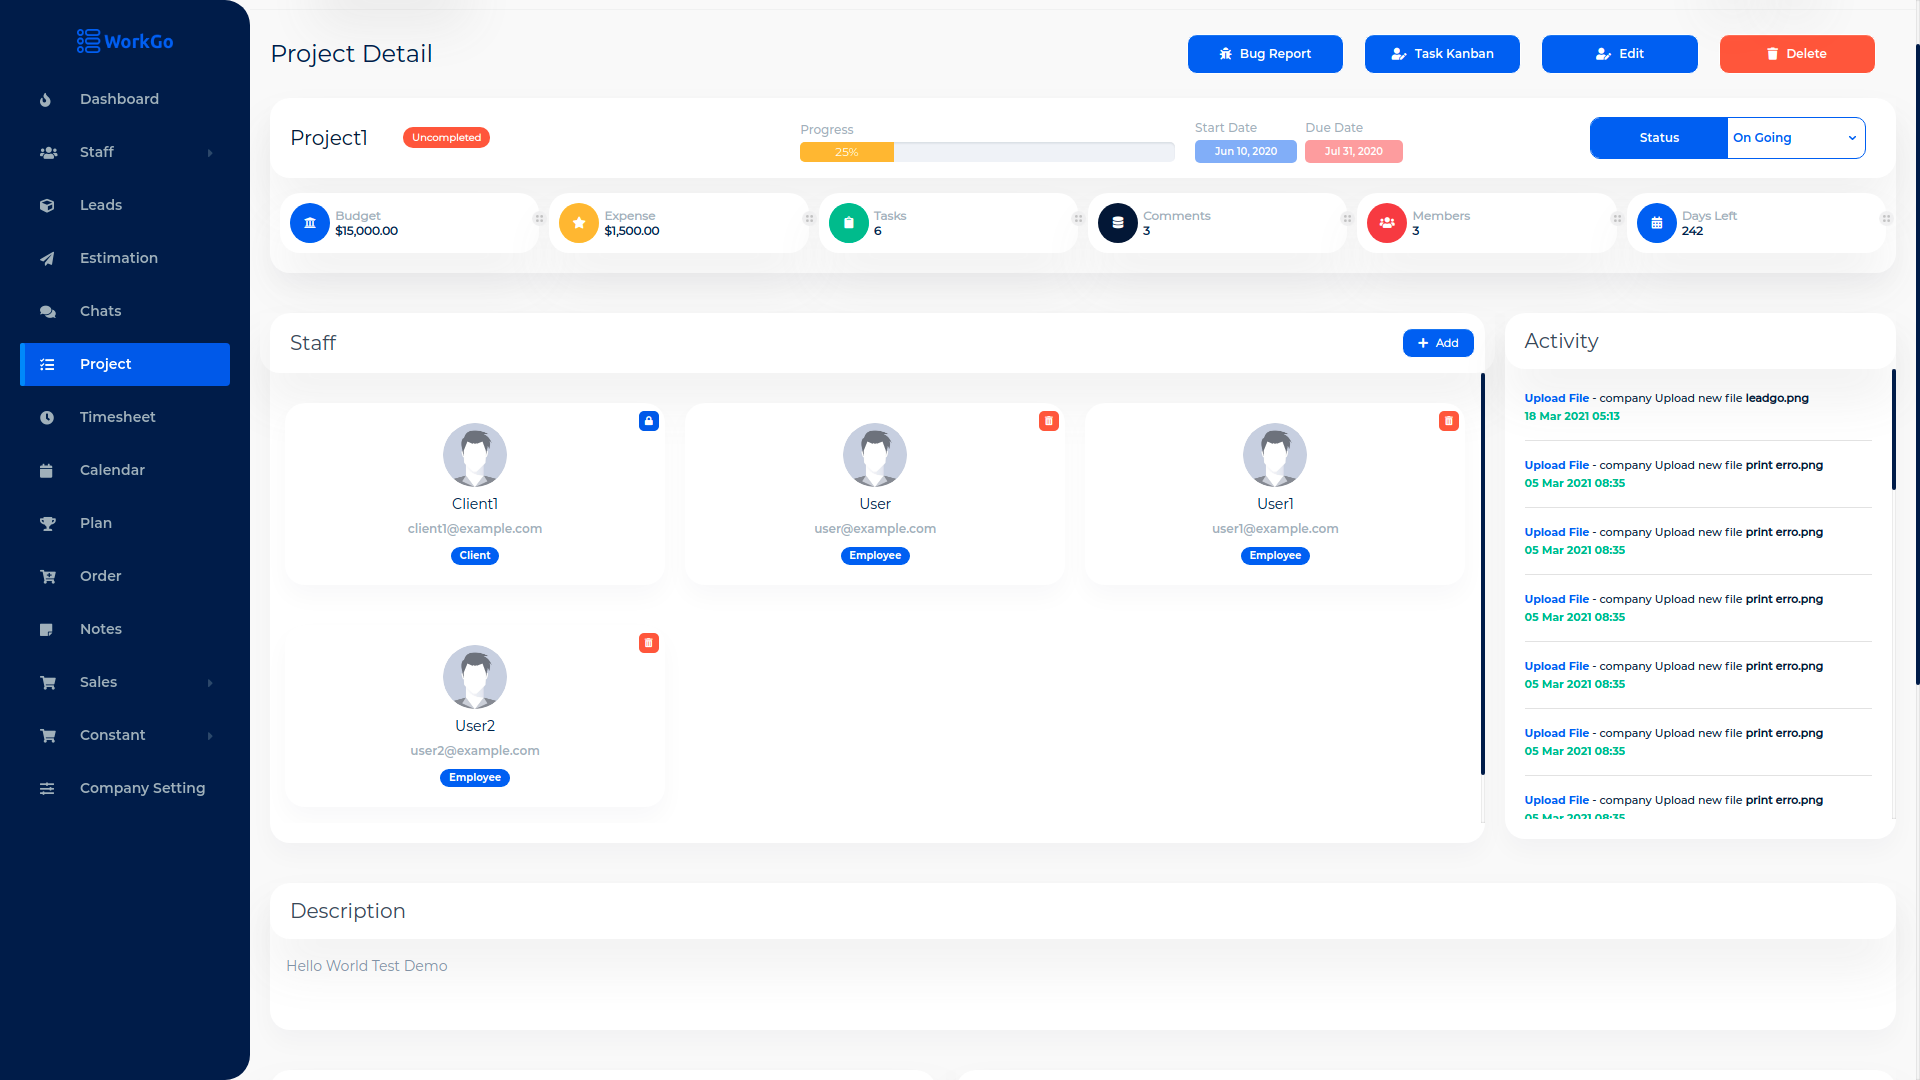 WorkGo SaaS - Lead and Project Management Tool - 9